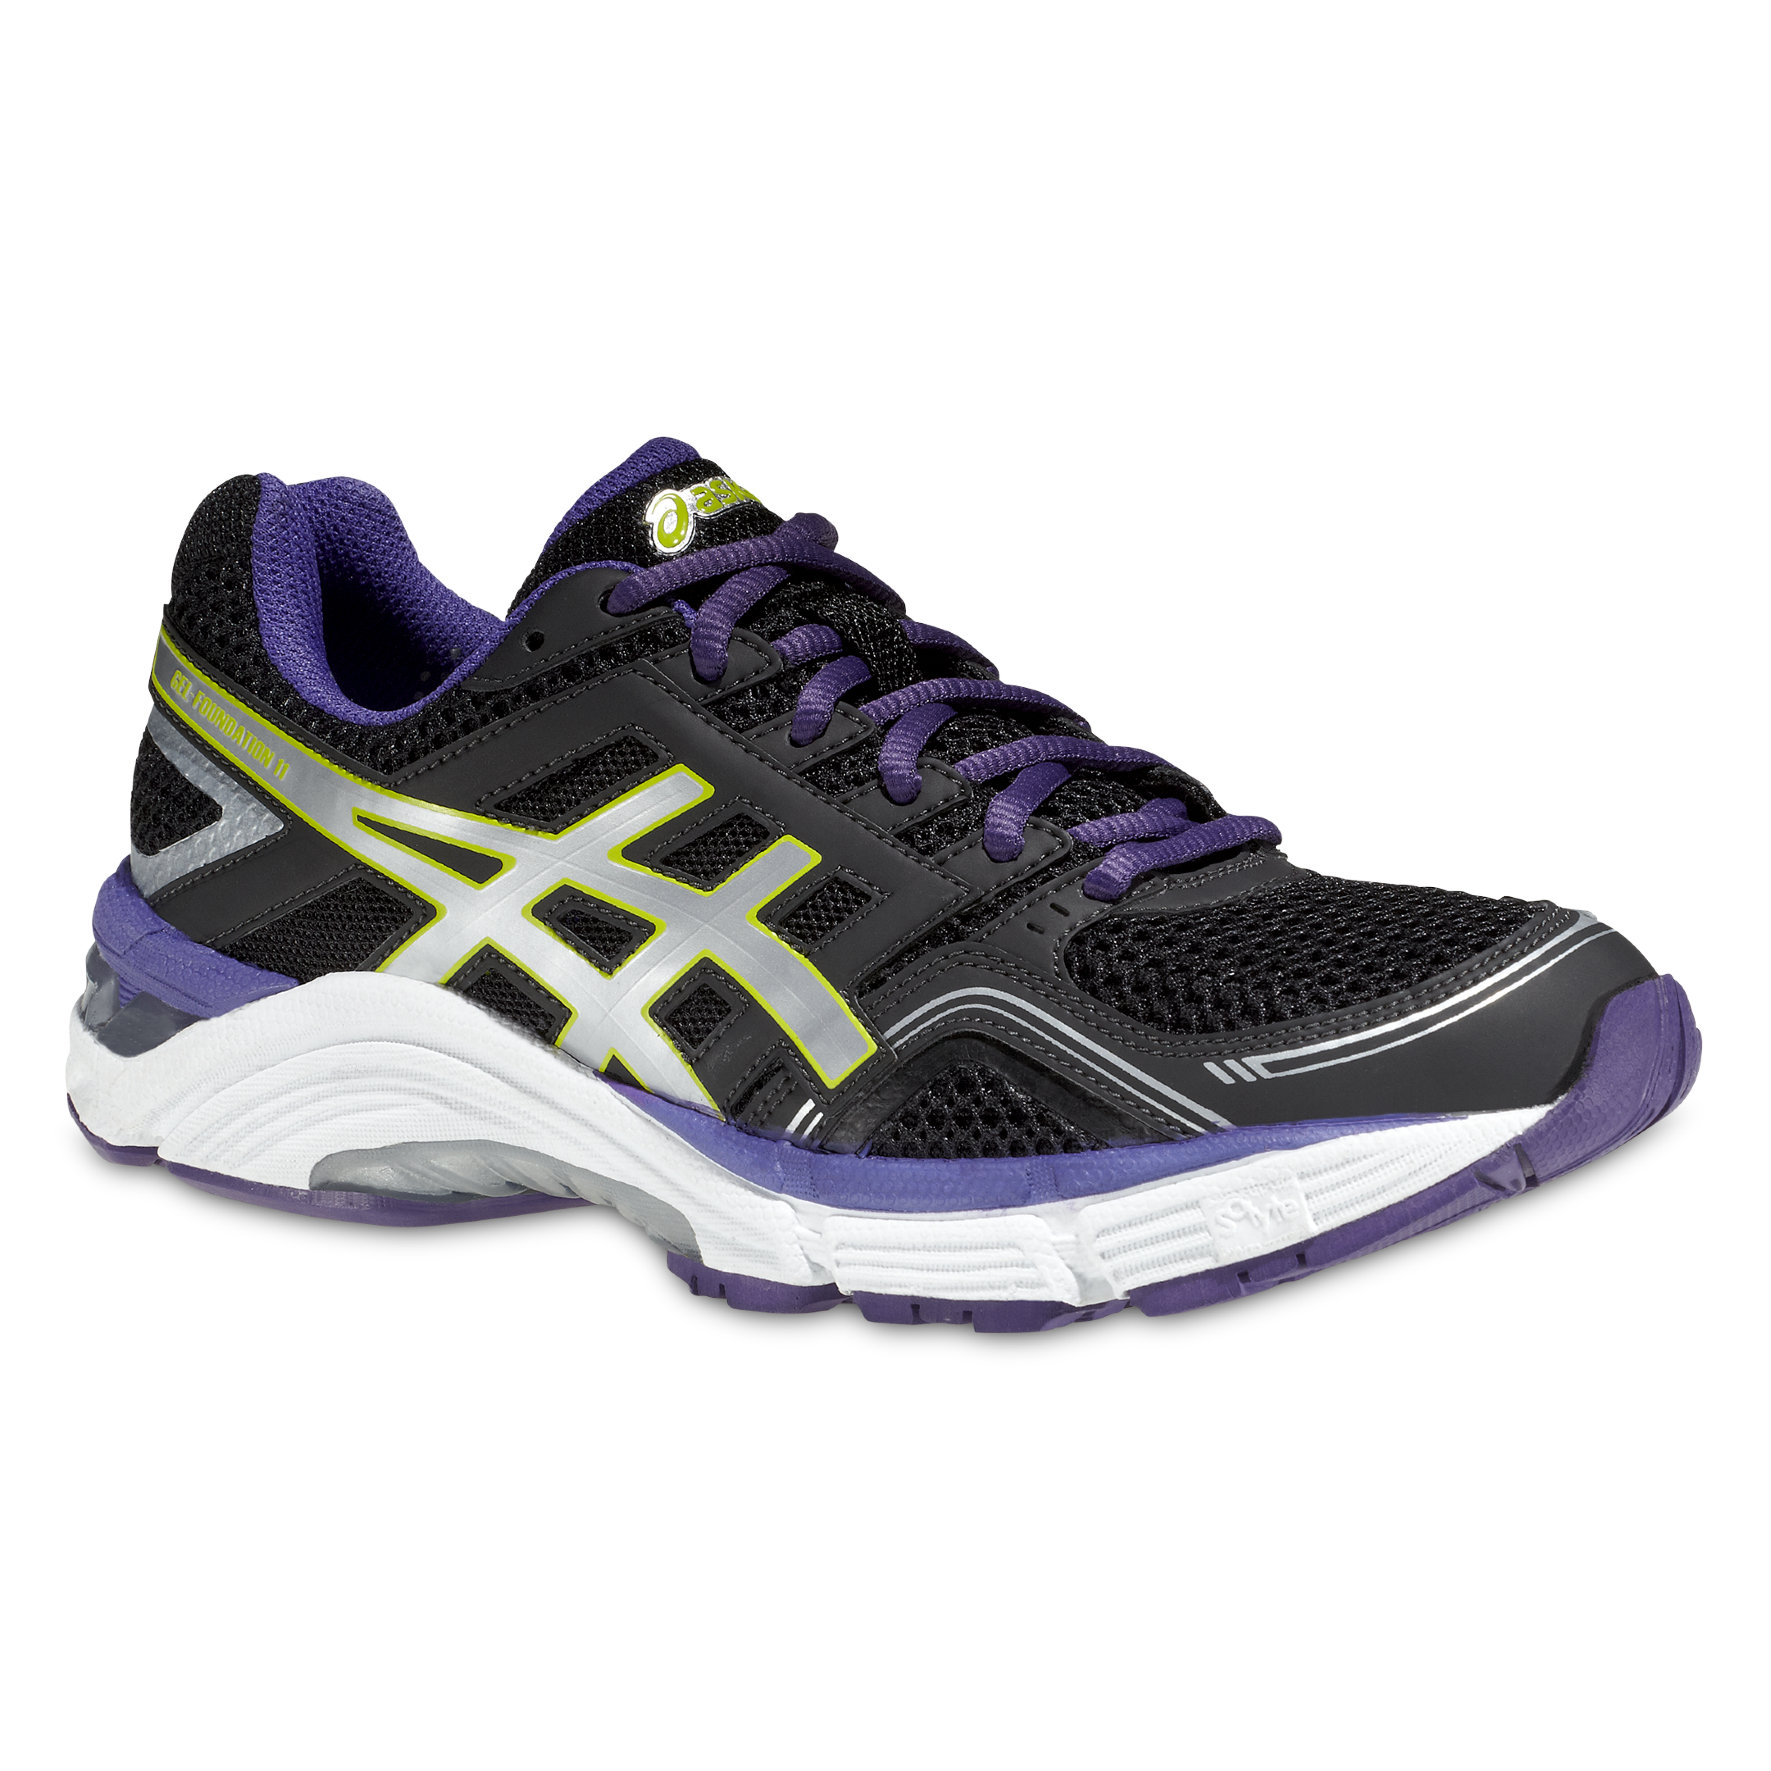 Asics Lady Gel Foundation 11 in Schwarz, Violet